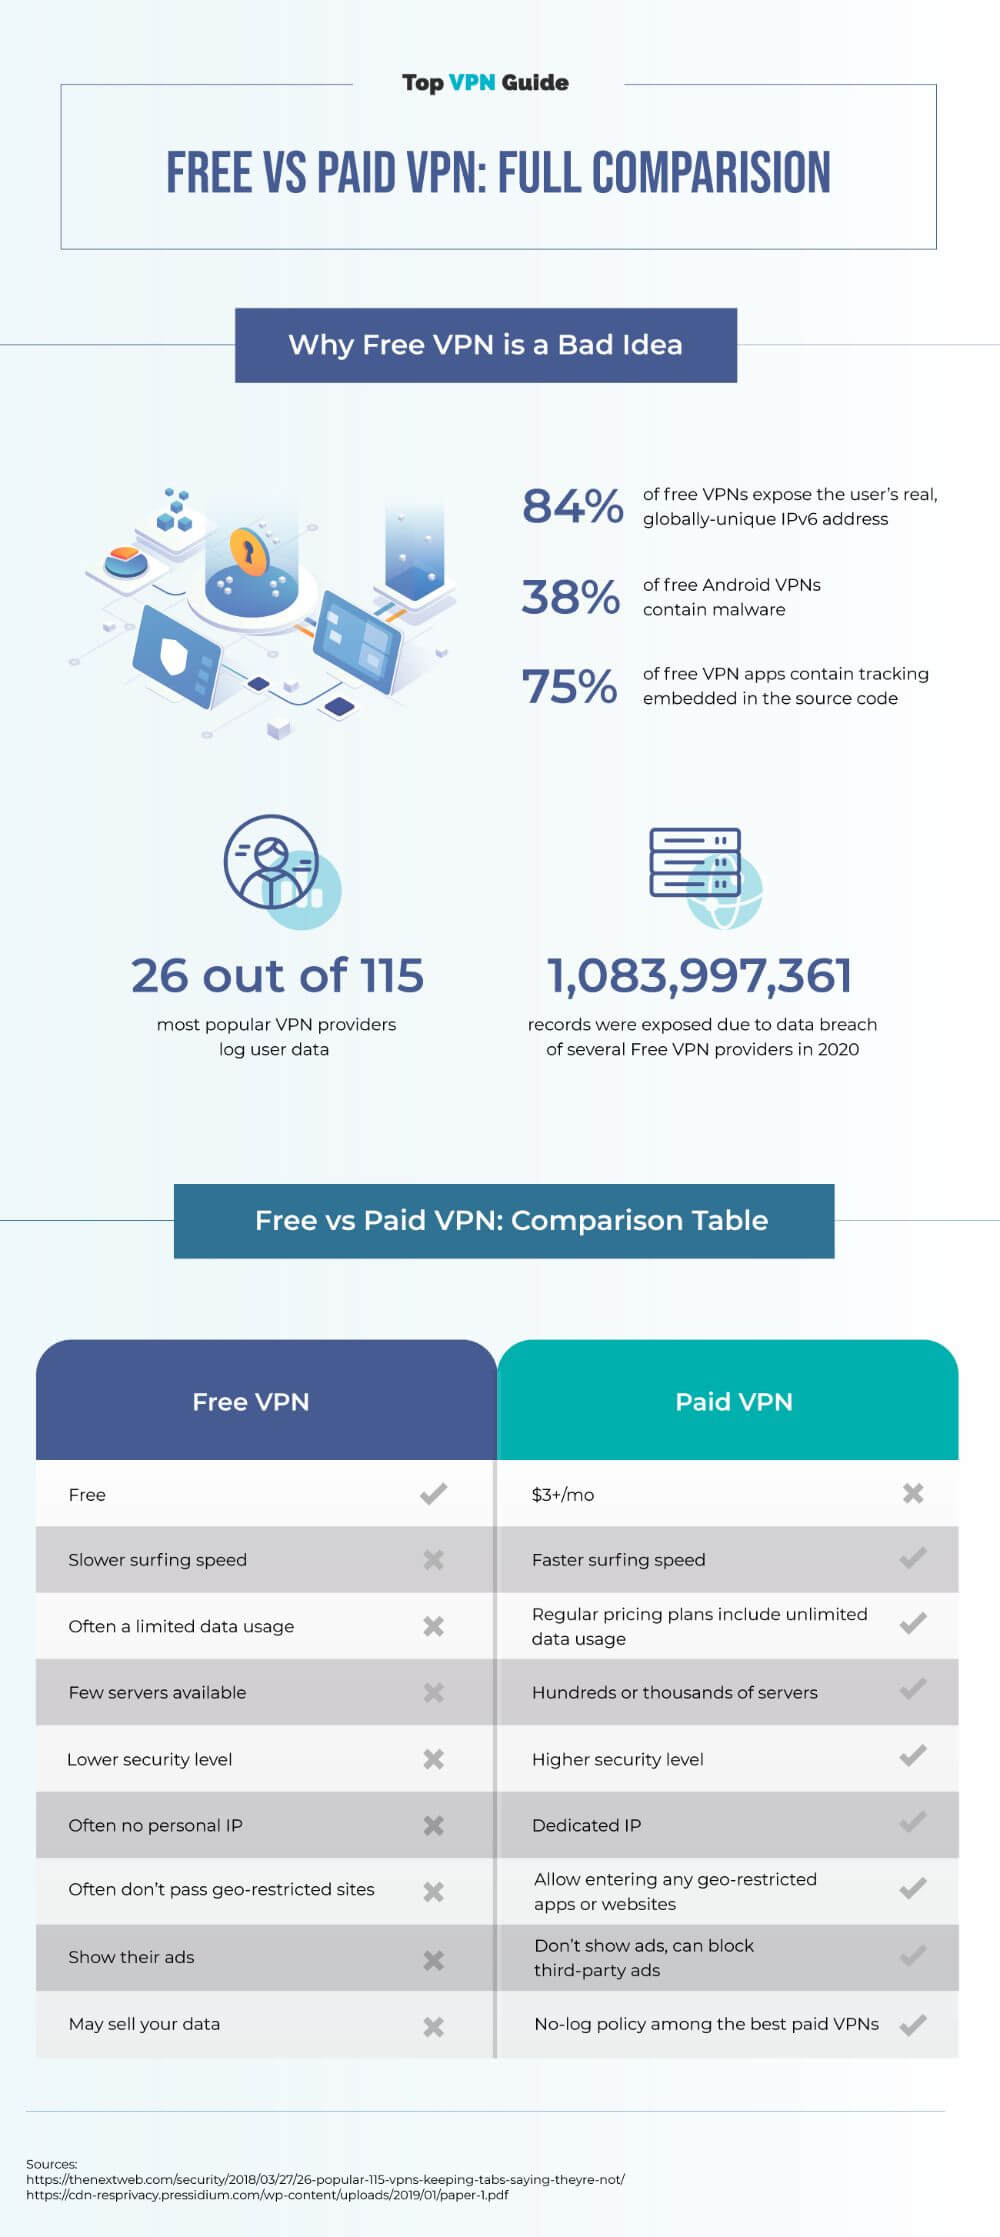 Comparison between free and paid vpn providers, infographic